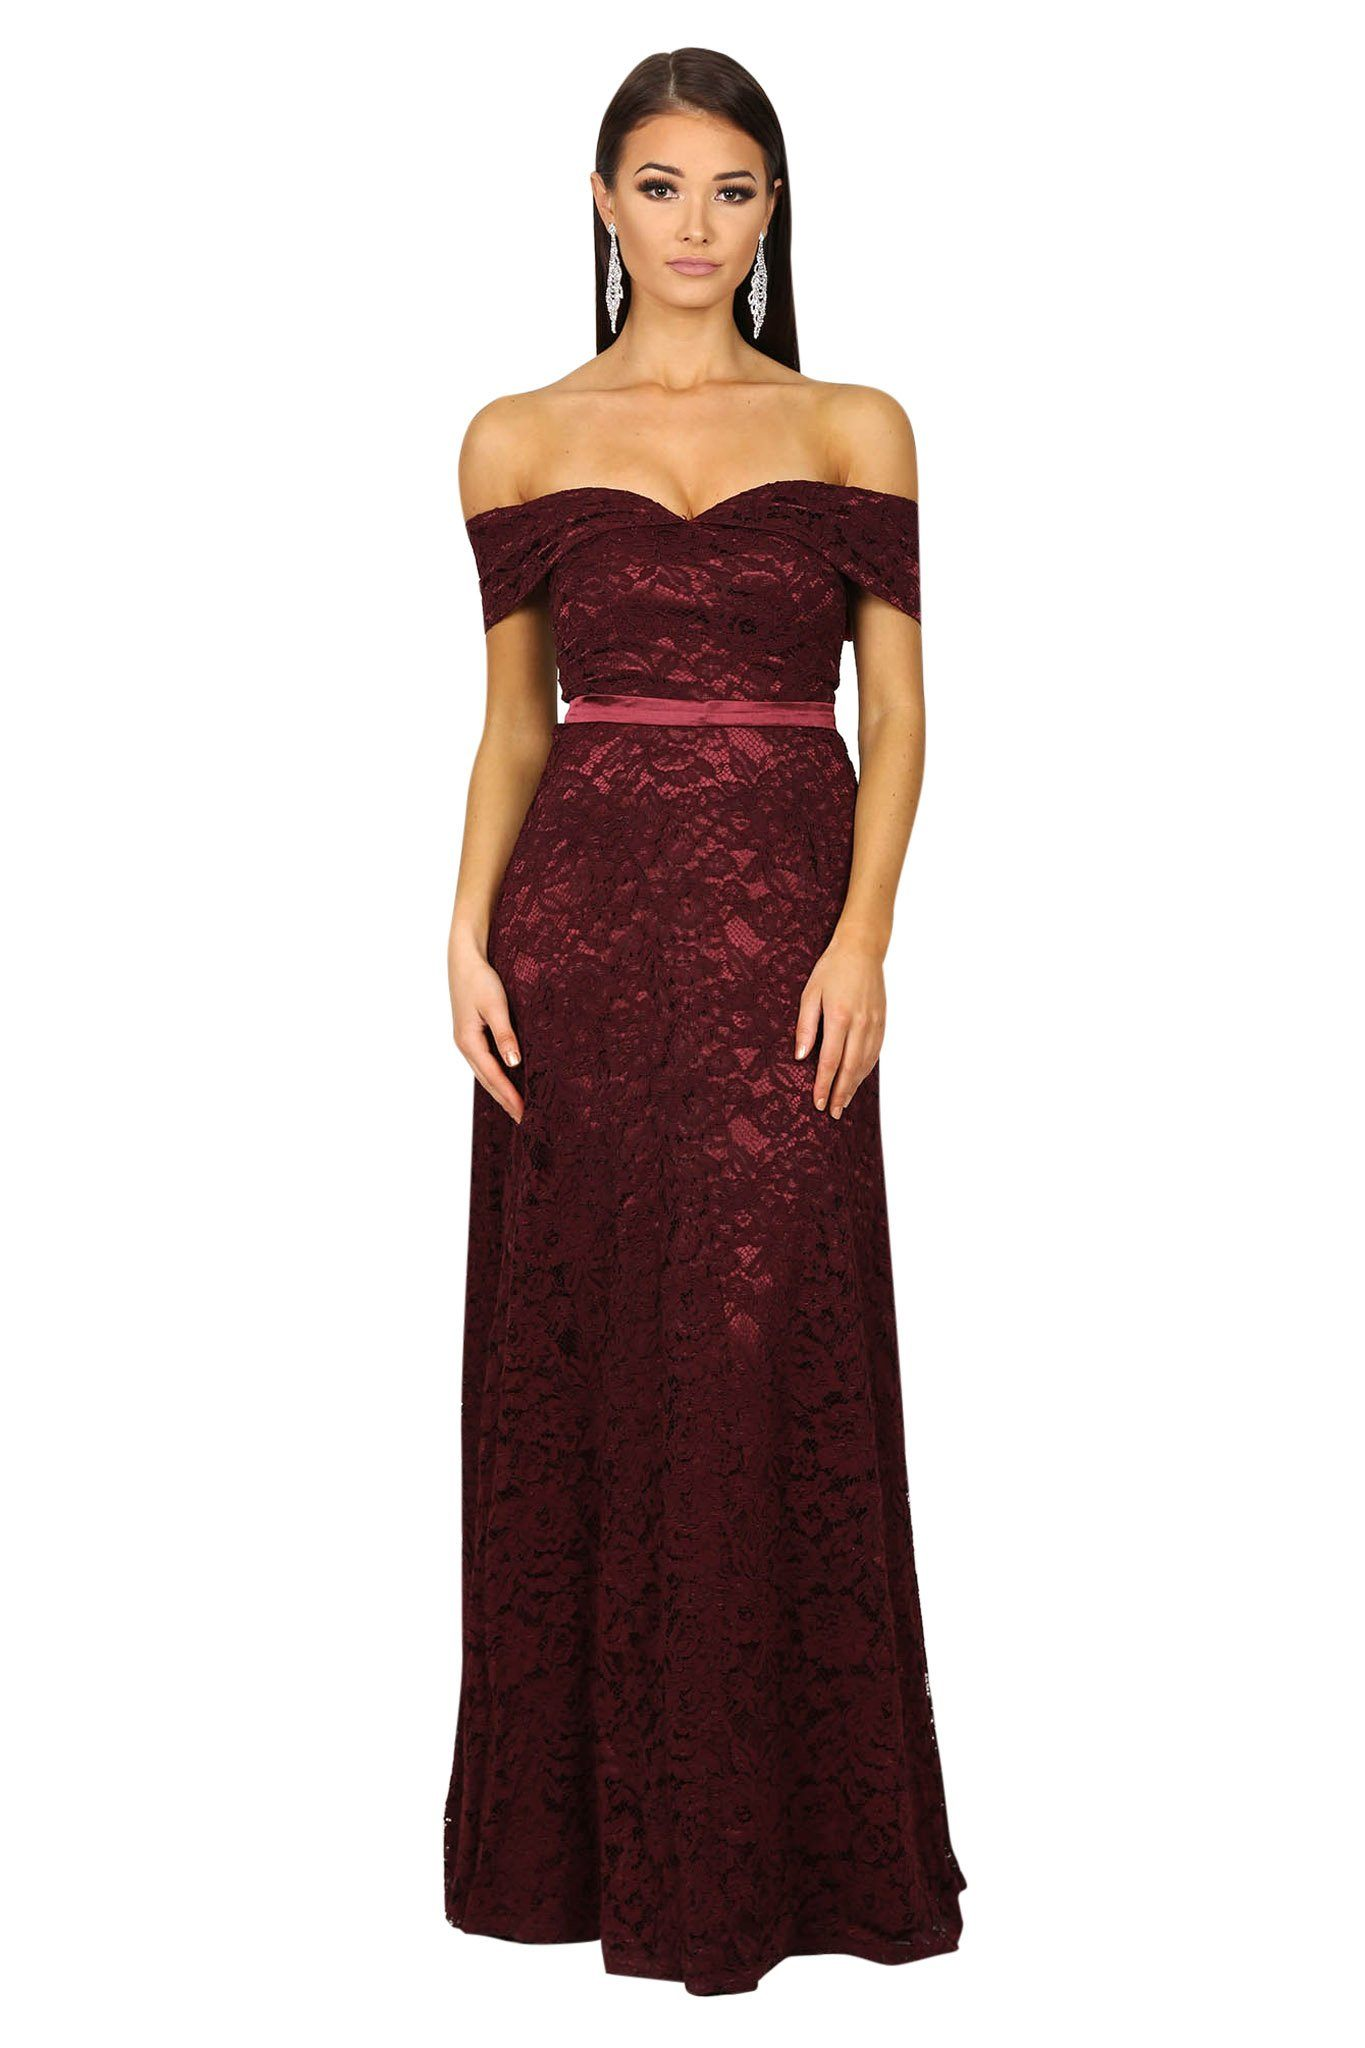 Wine Red lace off the shoulder floor length A-line gown with sweetheart neckline and satin belt